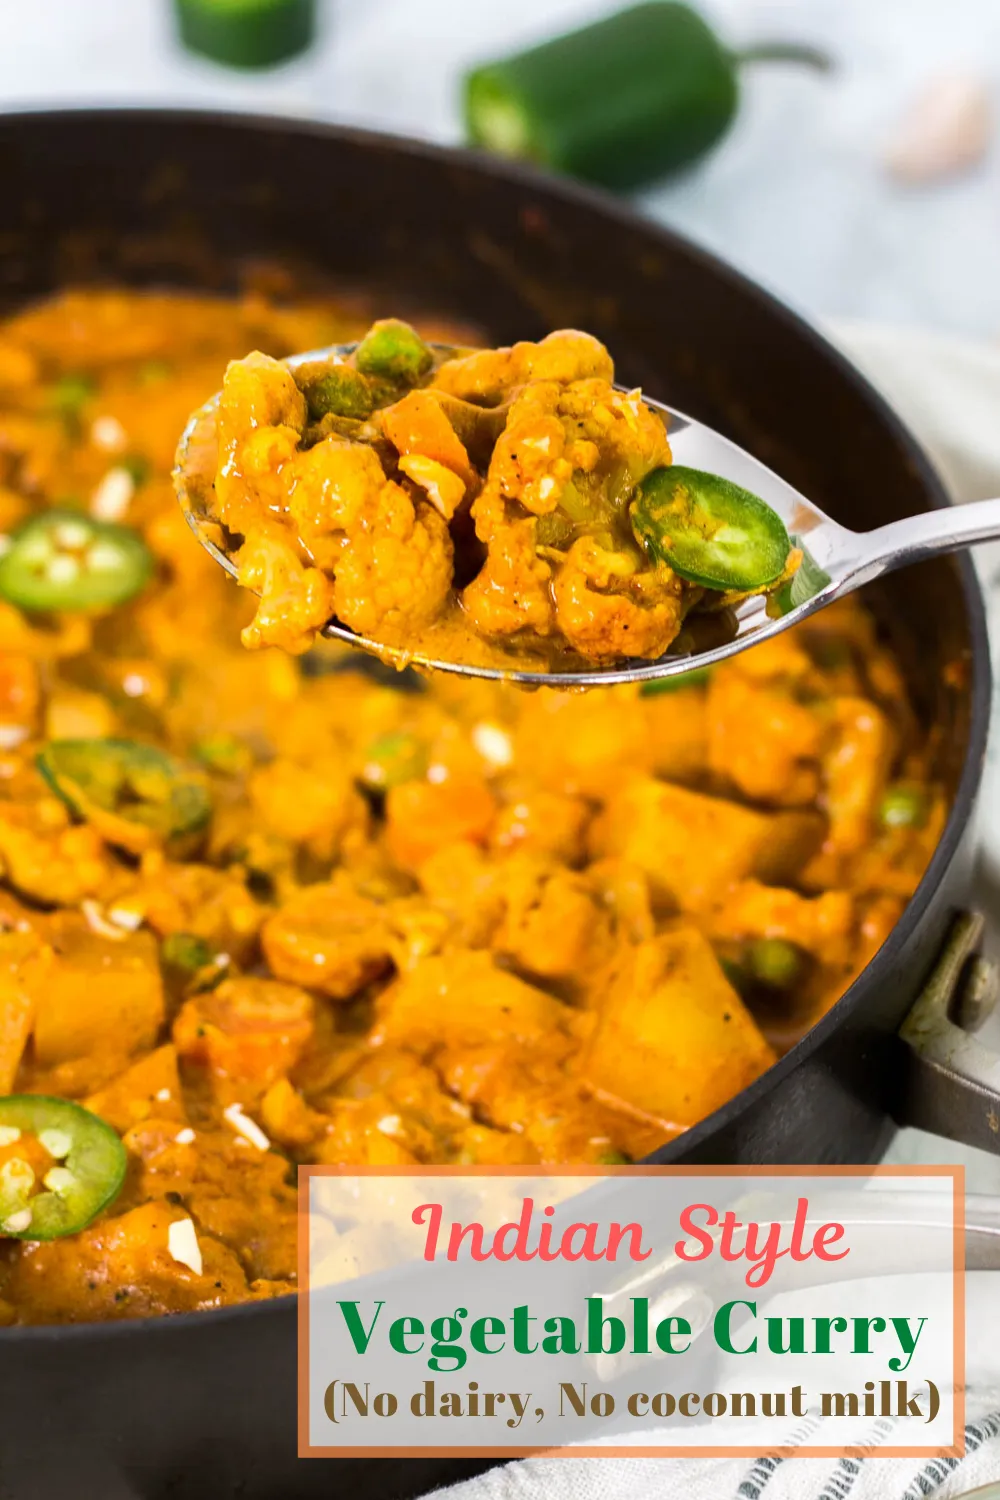 Indian Style Vegetable Curry No Dairy No Coconut Milk My Eclectic Bites Recipe In 2020 Vegetable Curry Asian Vegetarian Recipes Easy Vegetable Curry